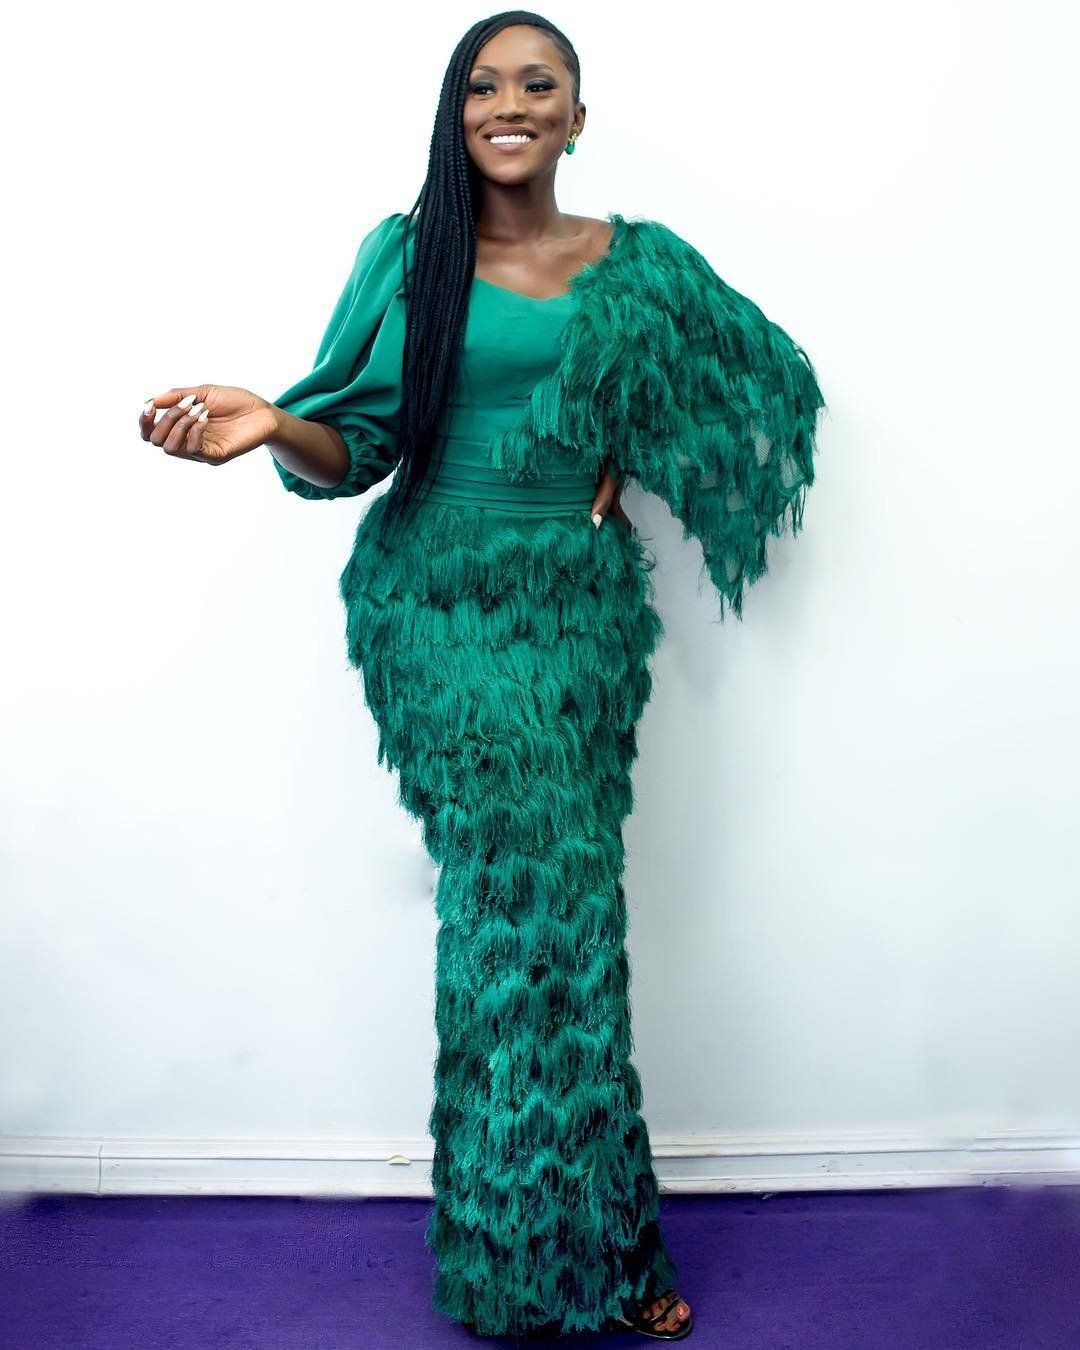 Daring Classy And Stunning Wedding Guest Dresses Wedding Digest Naija Stunning Wedding Guest Dresses African Design Dresses Wedding Guest Dress [ 1350 x 1080 Pixel ]